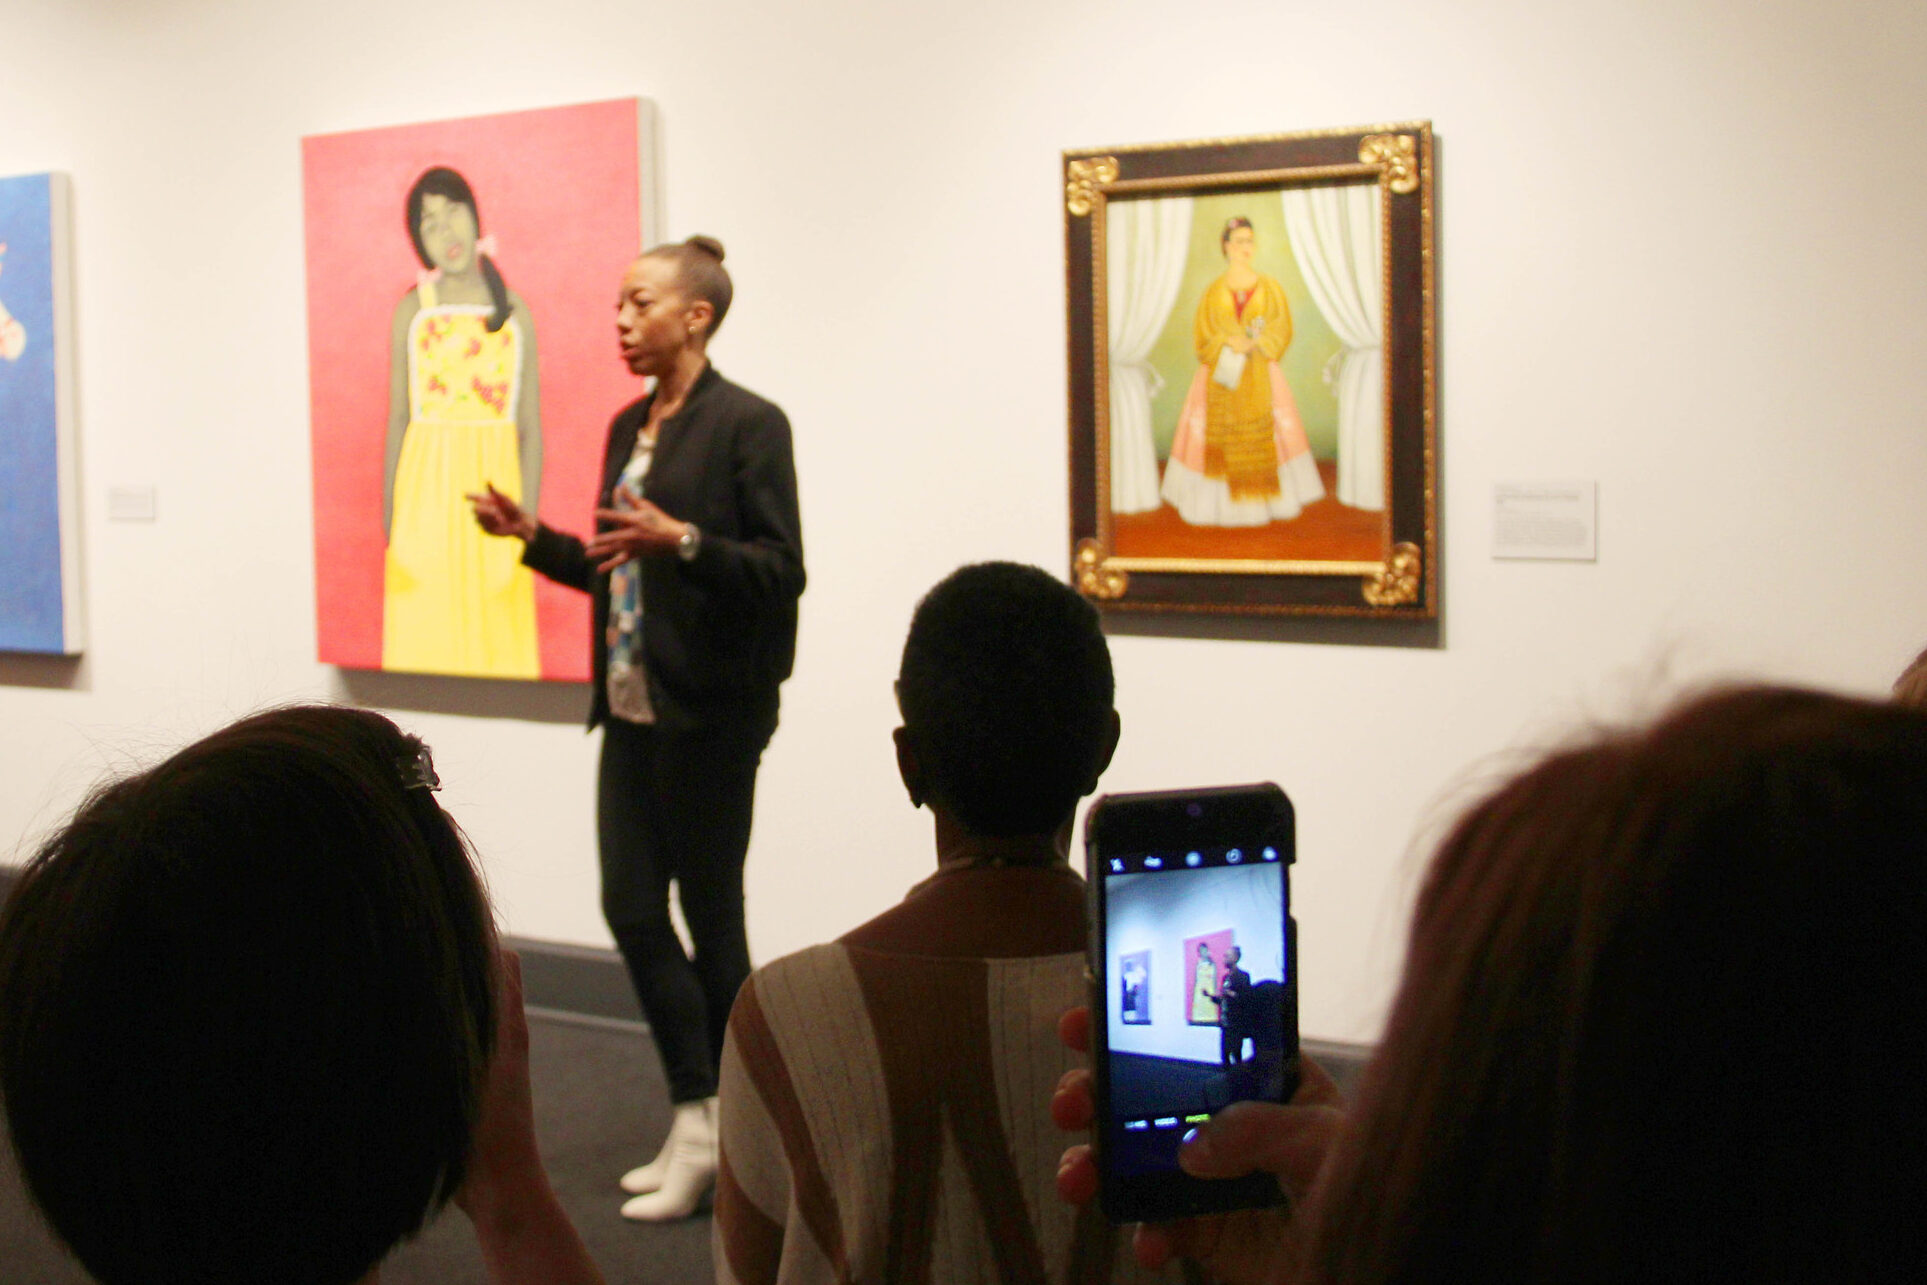 Smartphone filming of a darker skinned woman artist talking in front of her pink and yellow artwork in the museum gallery.